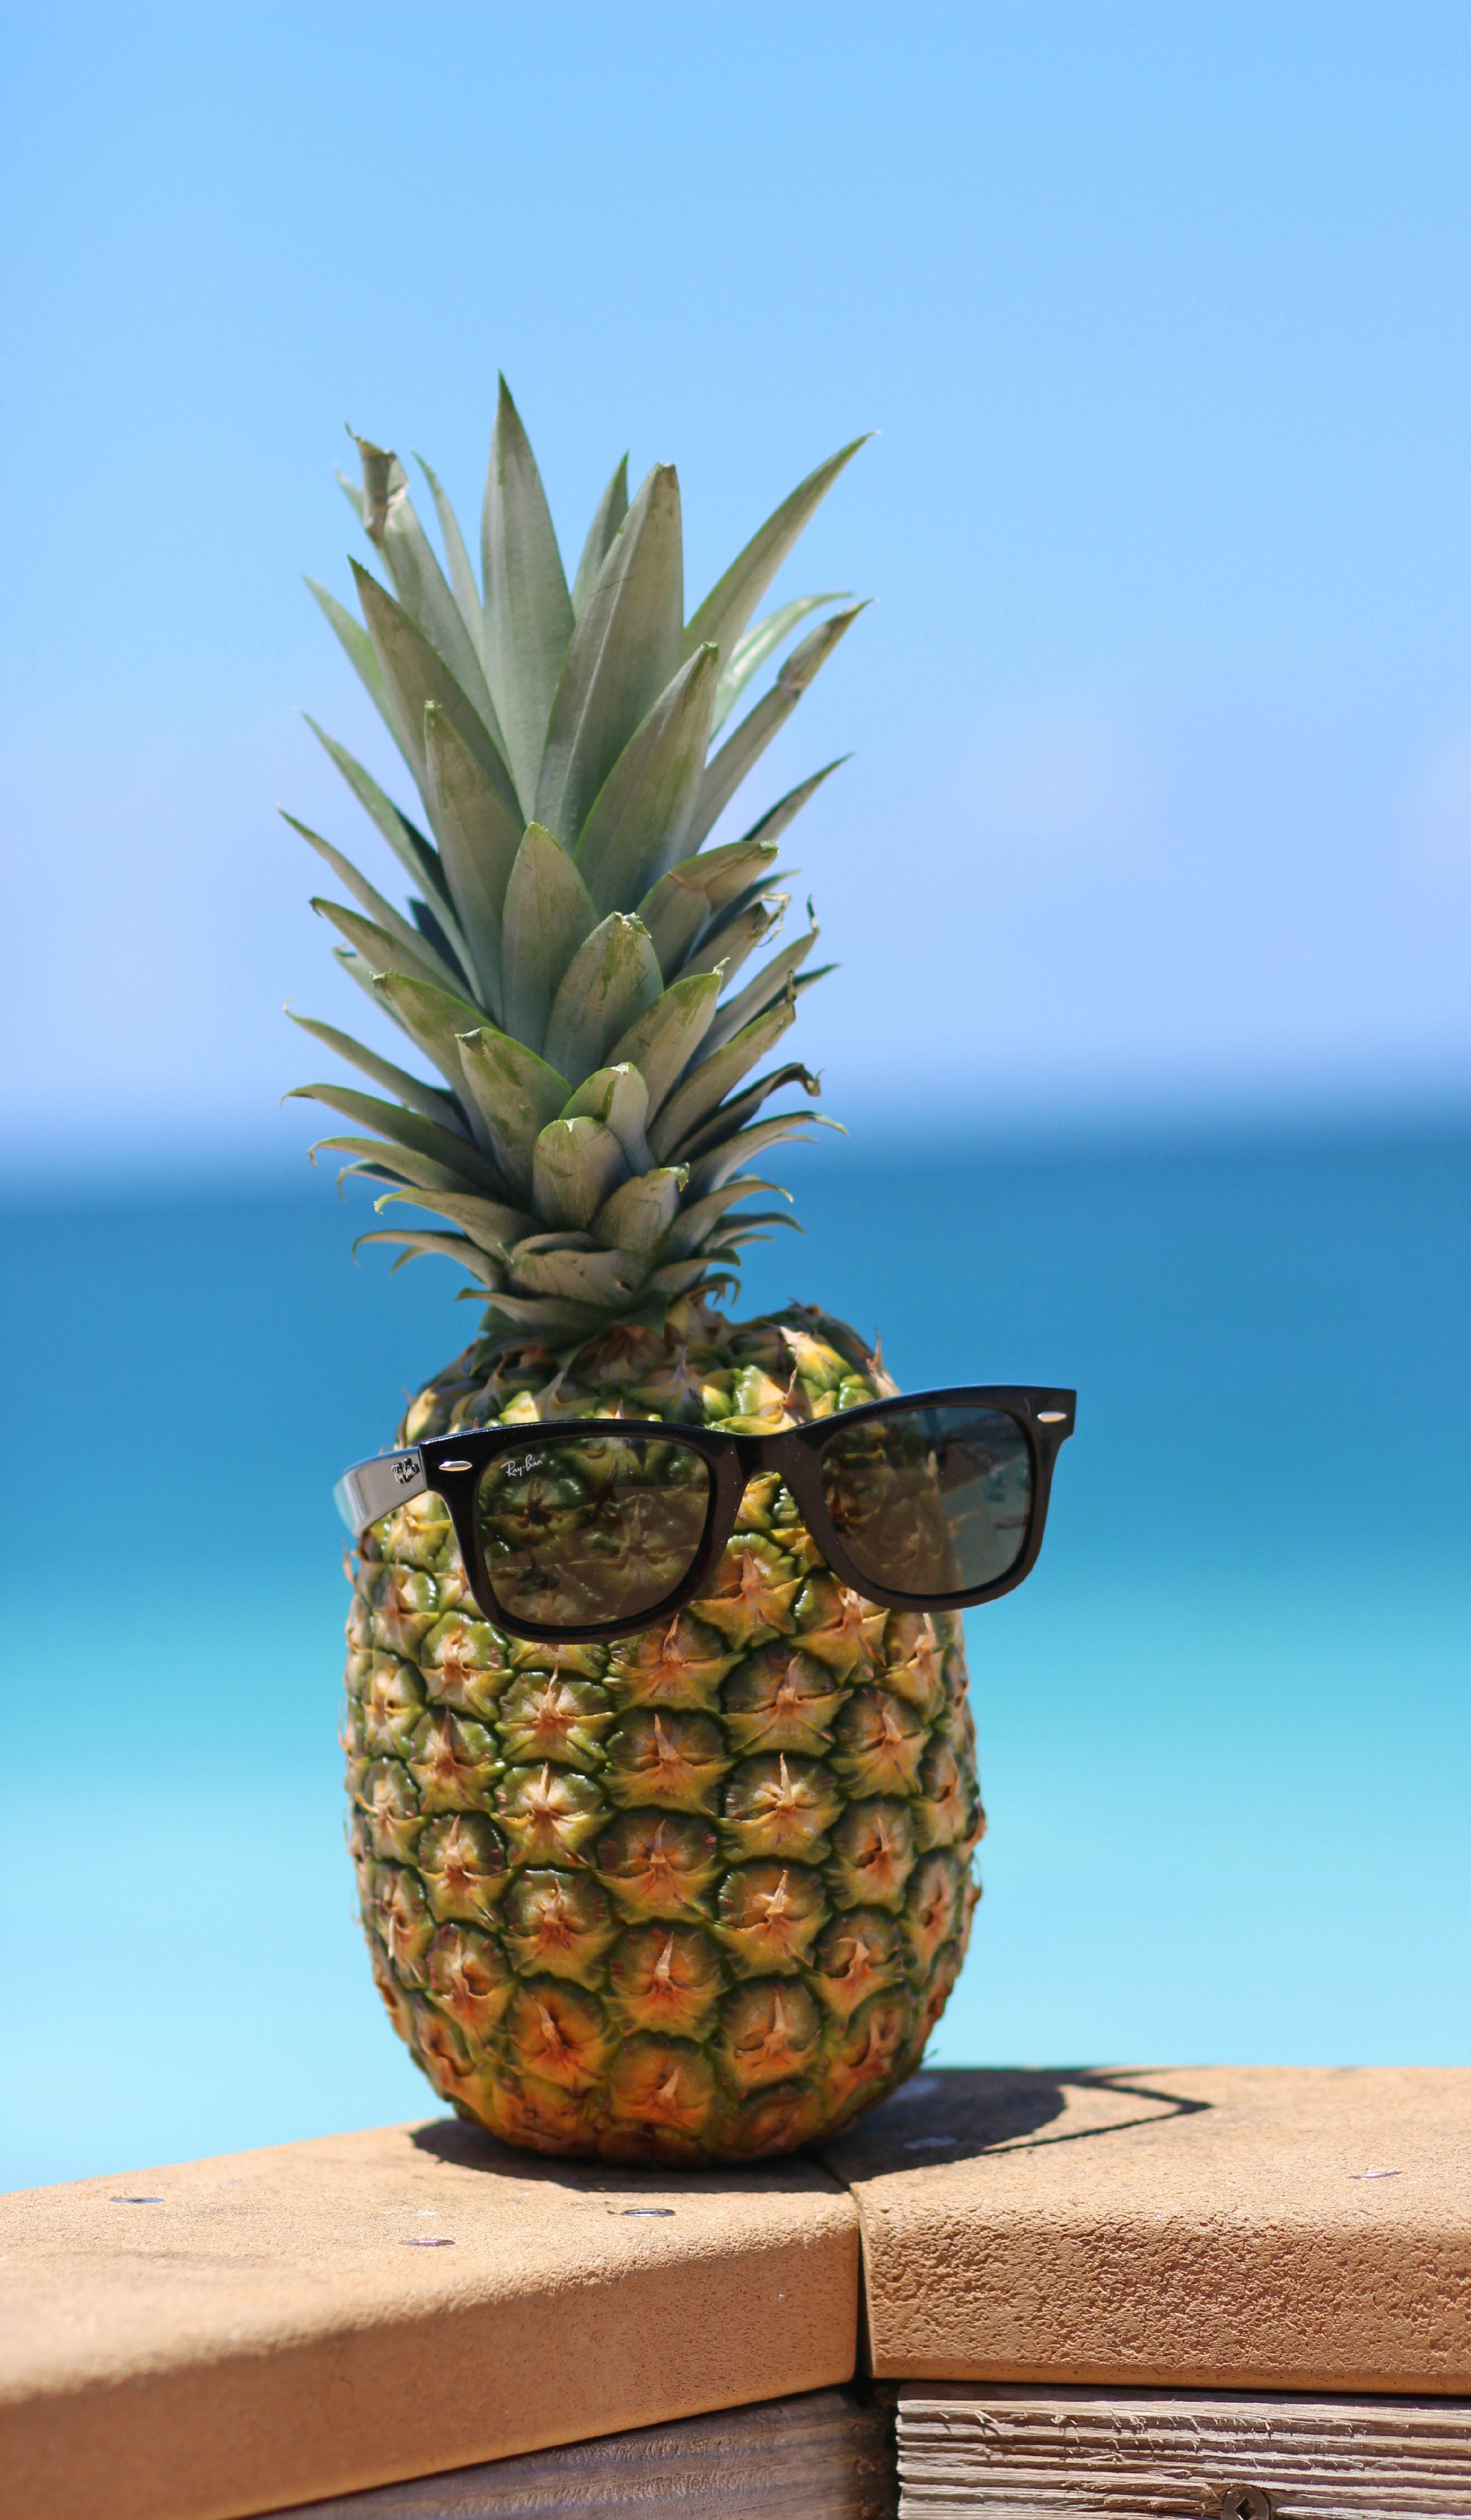 Pineapple With Sunglasses Tumblr The Perfect Summer Vacation Dress Best Beauty And Style Tips